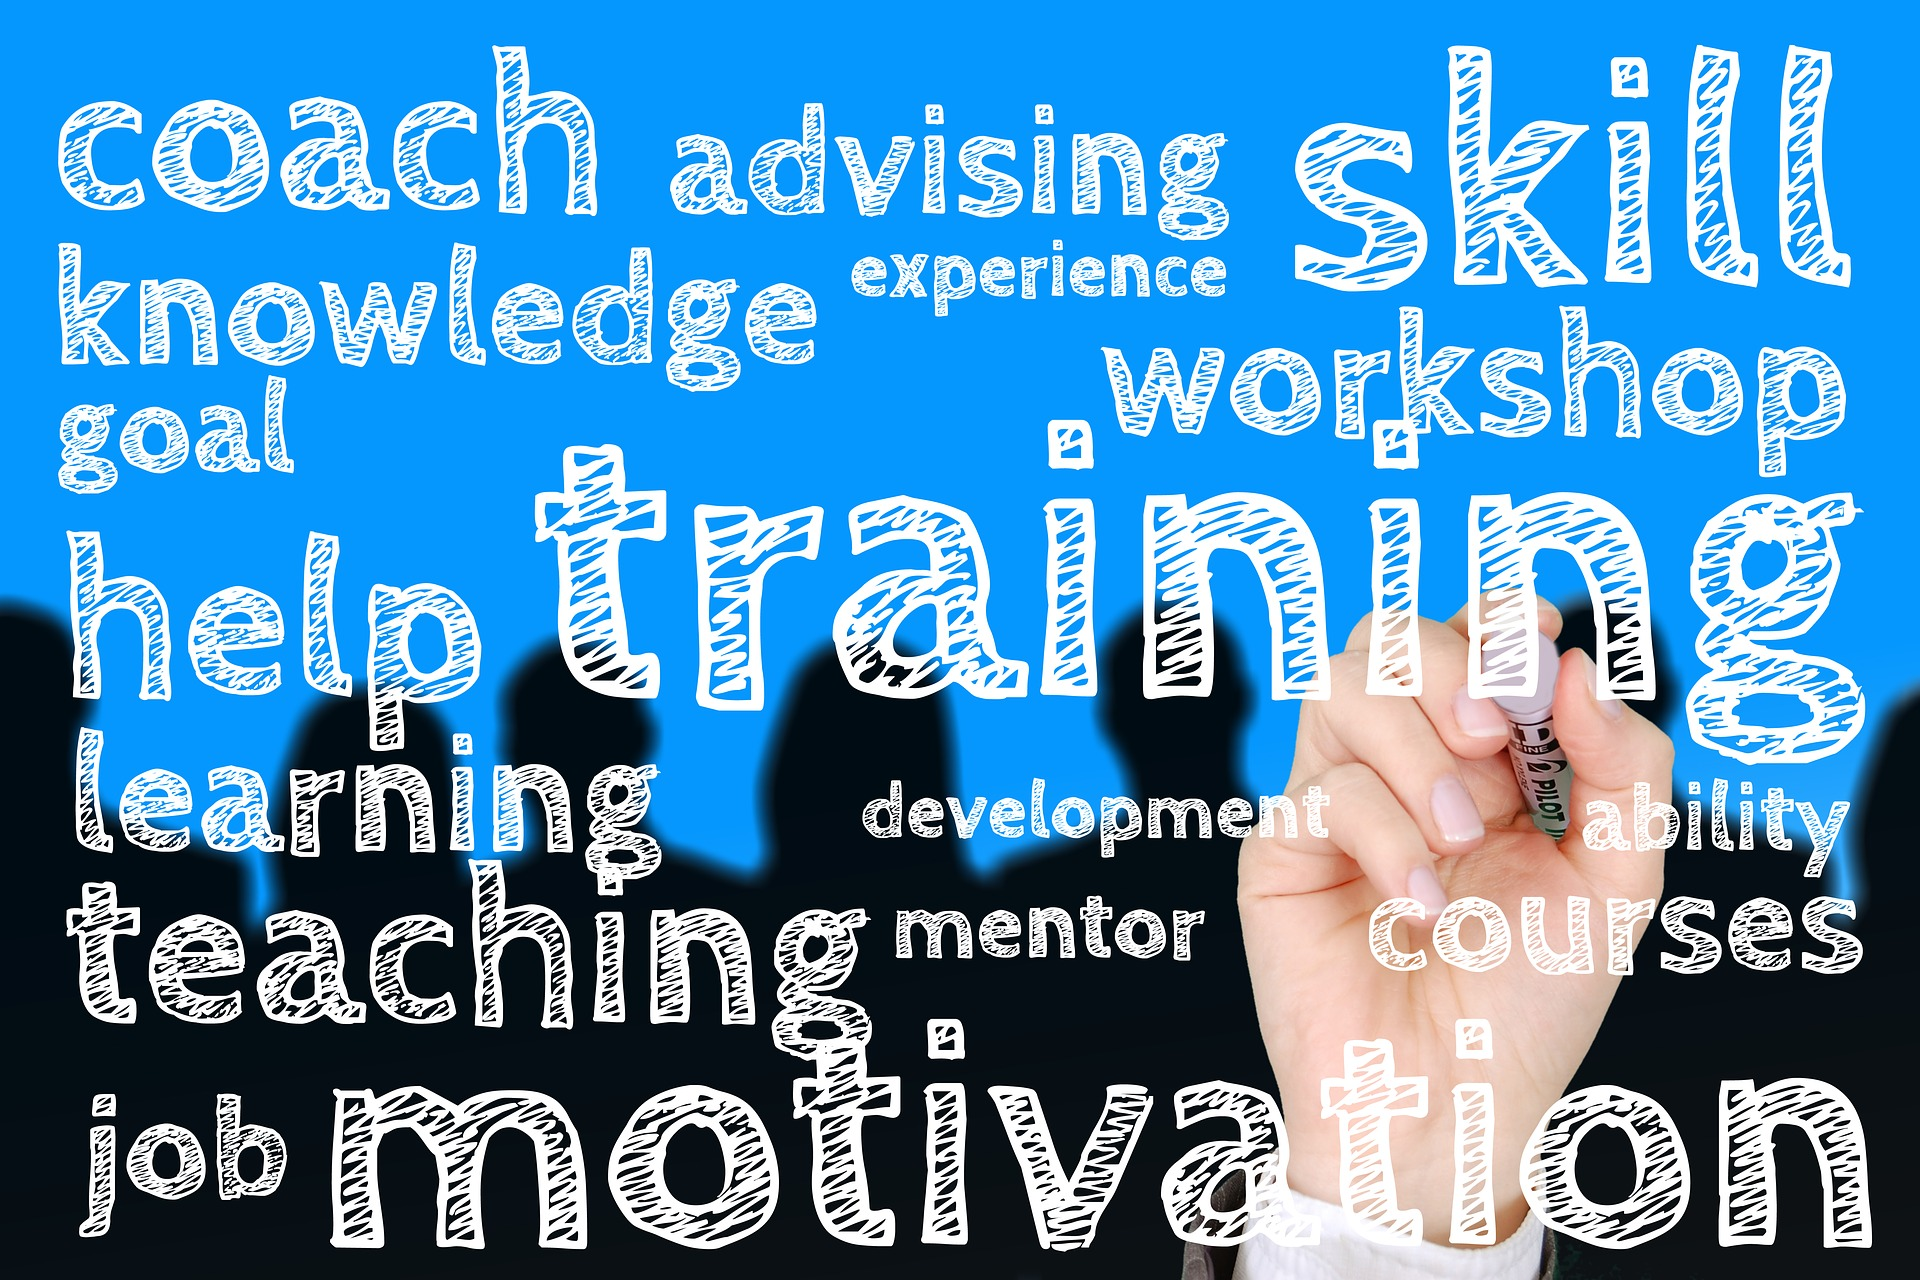 Image: hand writing words on board: coach advising skill knowledge experience workshop help training learning development teaching mentor courses job motivation